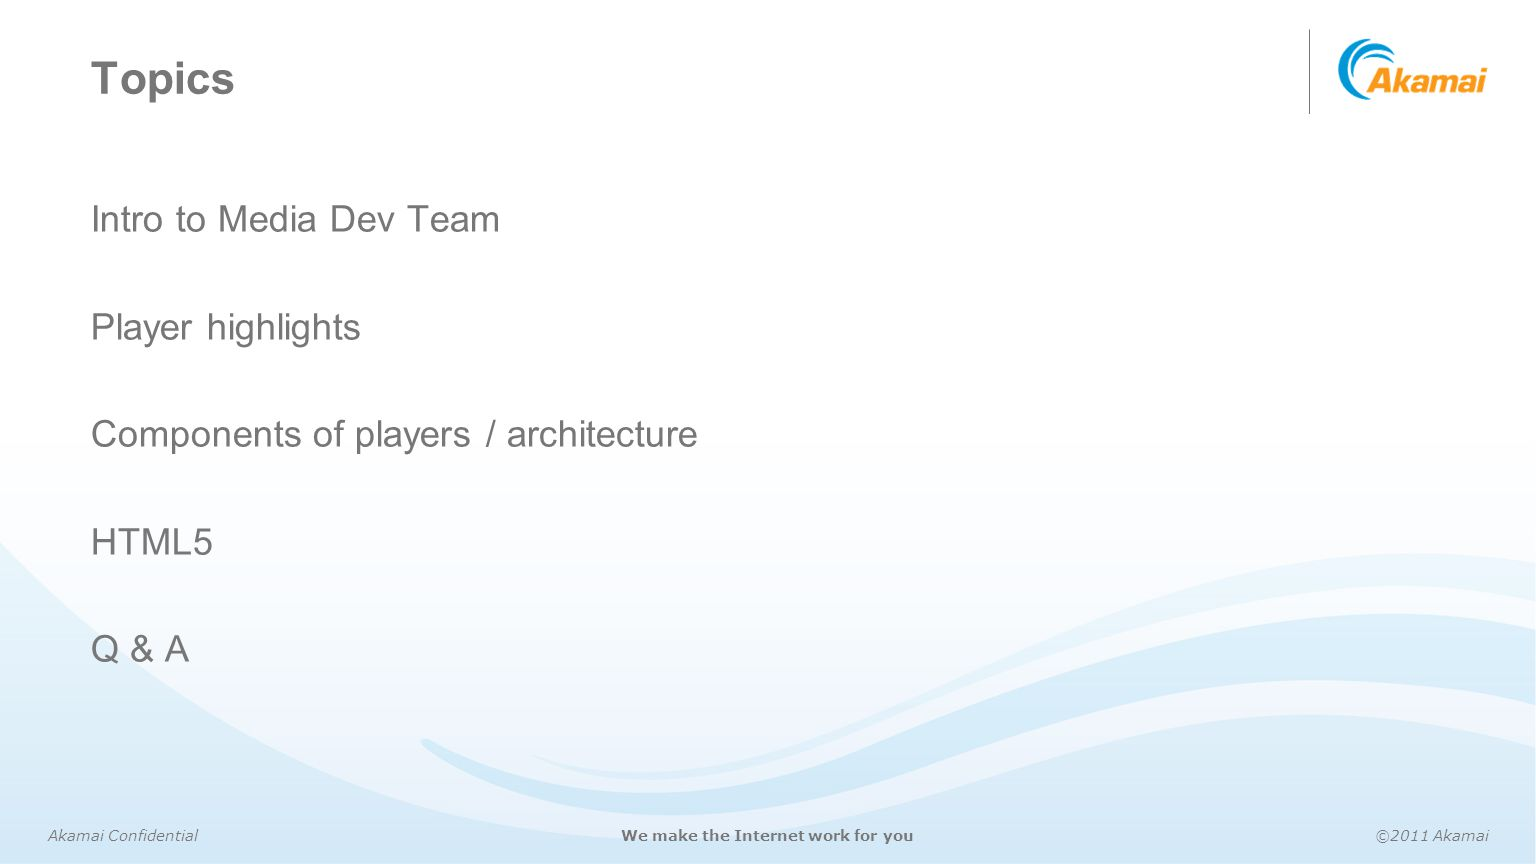 Akamai Confidential©2011 AkamaiWe make the Internet work for you Topics Intro to Media Dev Team Player highlights Components of players / architecture